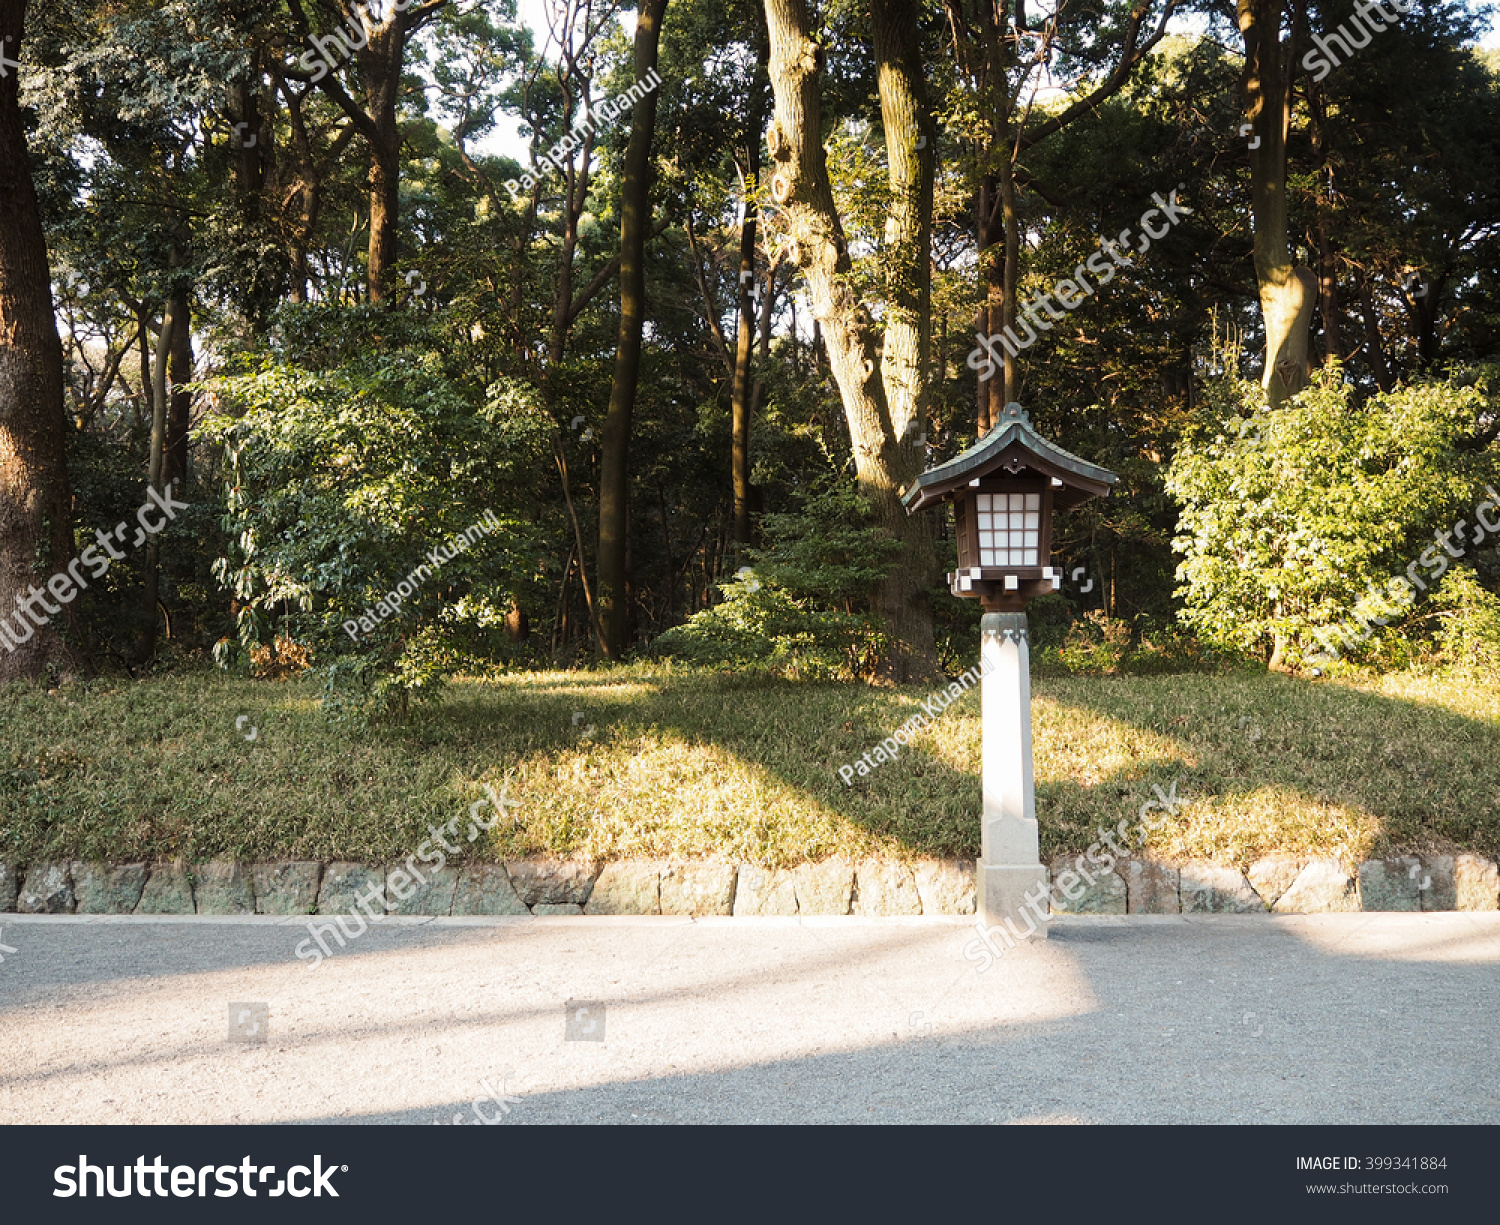 Stone Lamp Japan Temple Double Space Stock Photo 399341884 ... for Temple Stone Lamp  303mzq